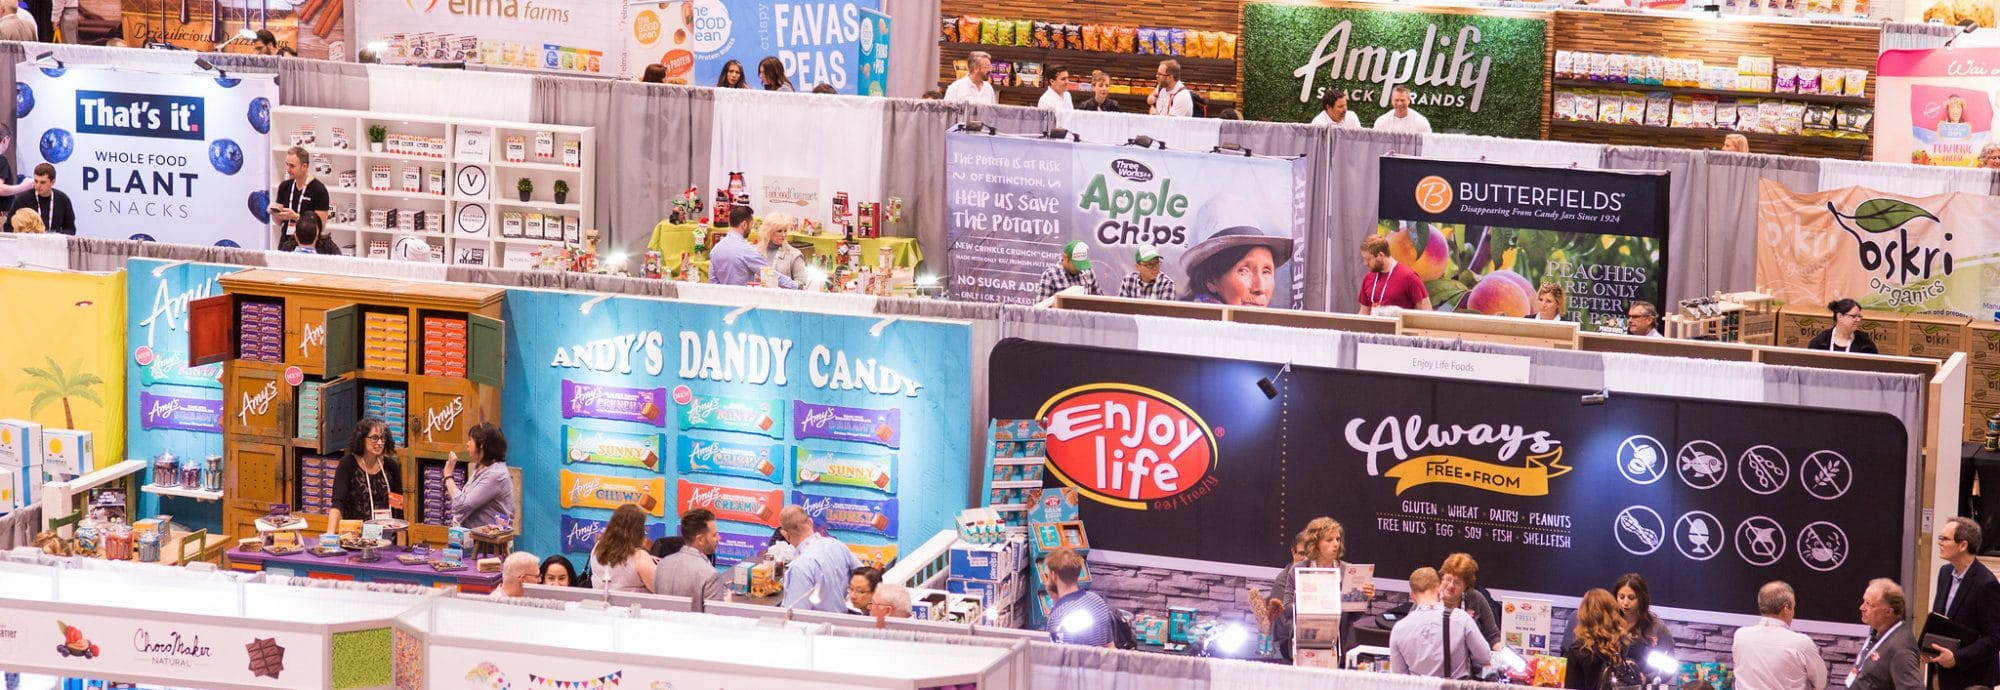 Gourmet candy and snack exhibitors